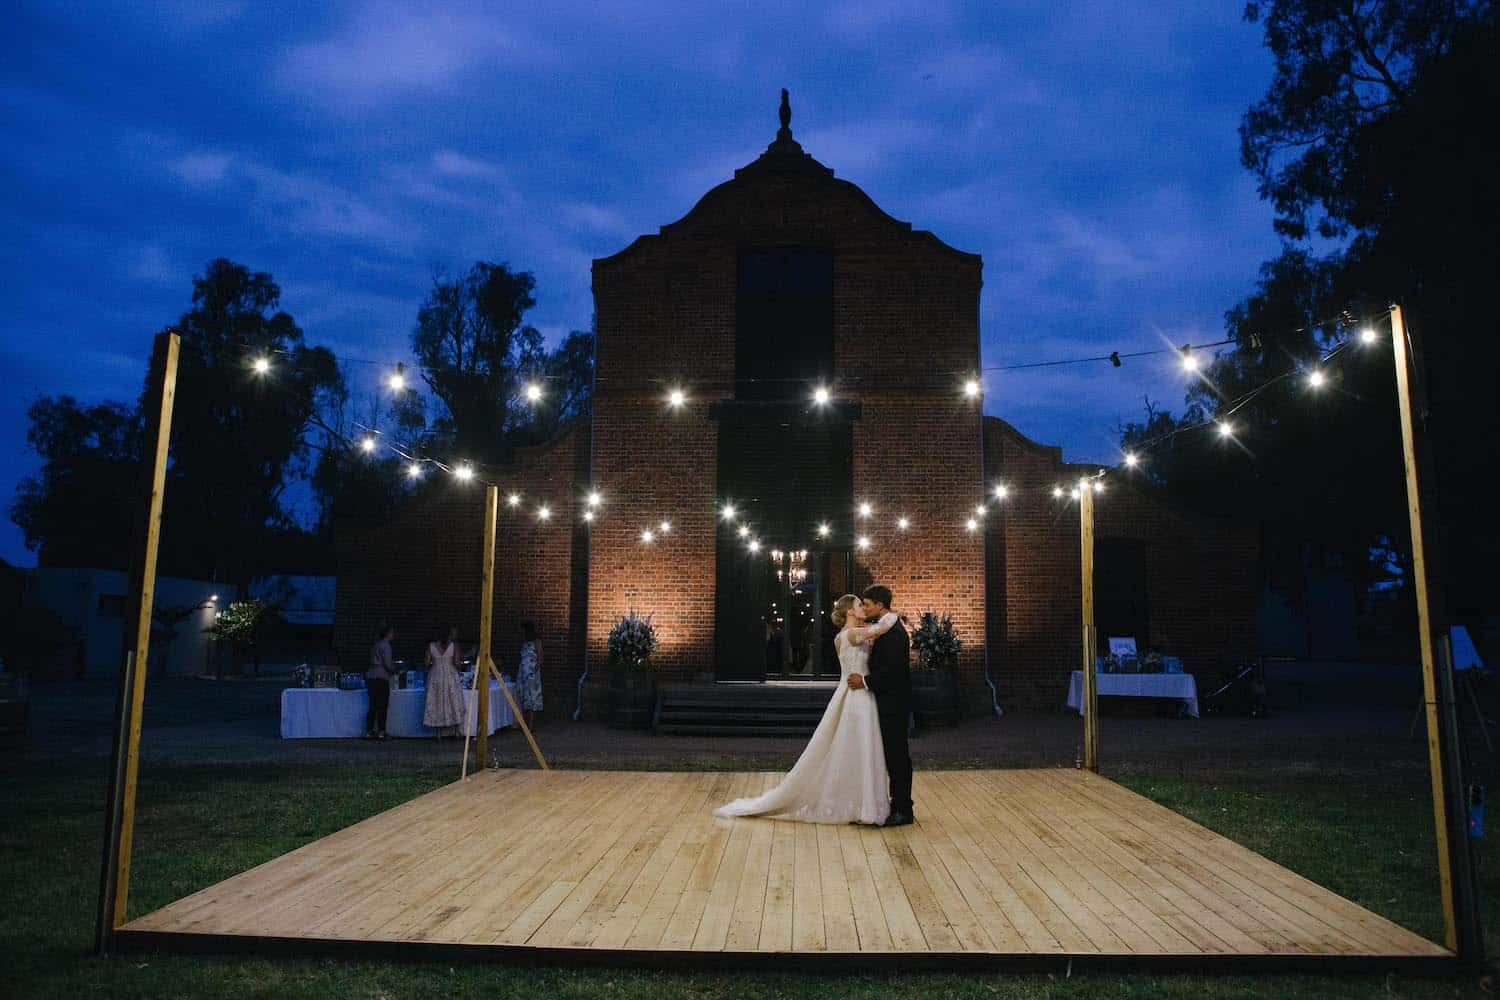 Killeen Station Barn Weddings Melbourne Mia and Brents Wedding Madeleine Chiller Photography 10